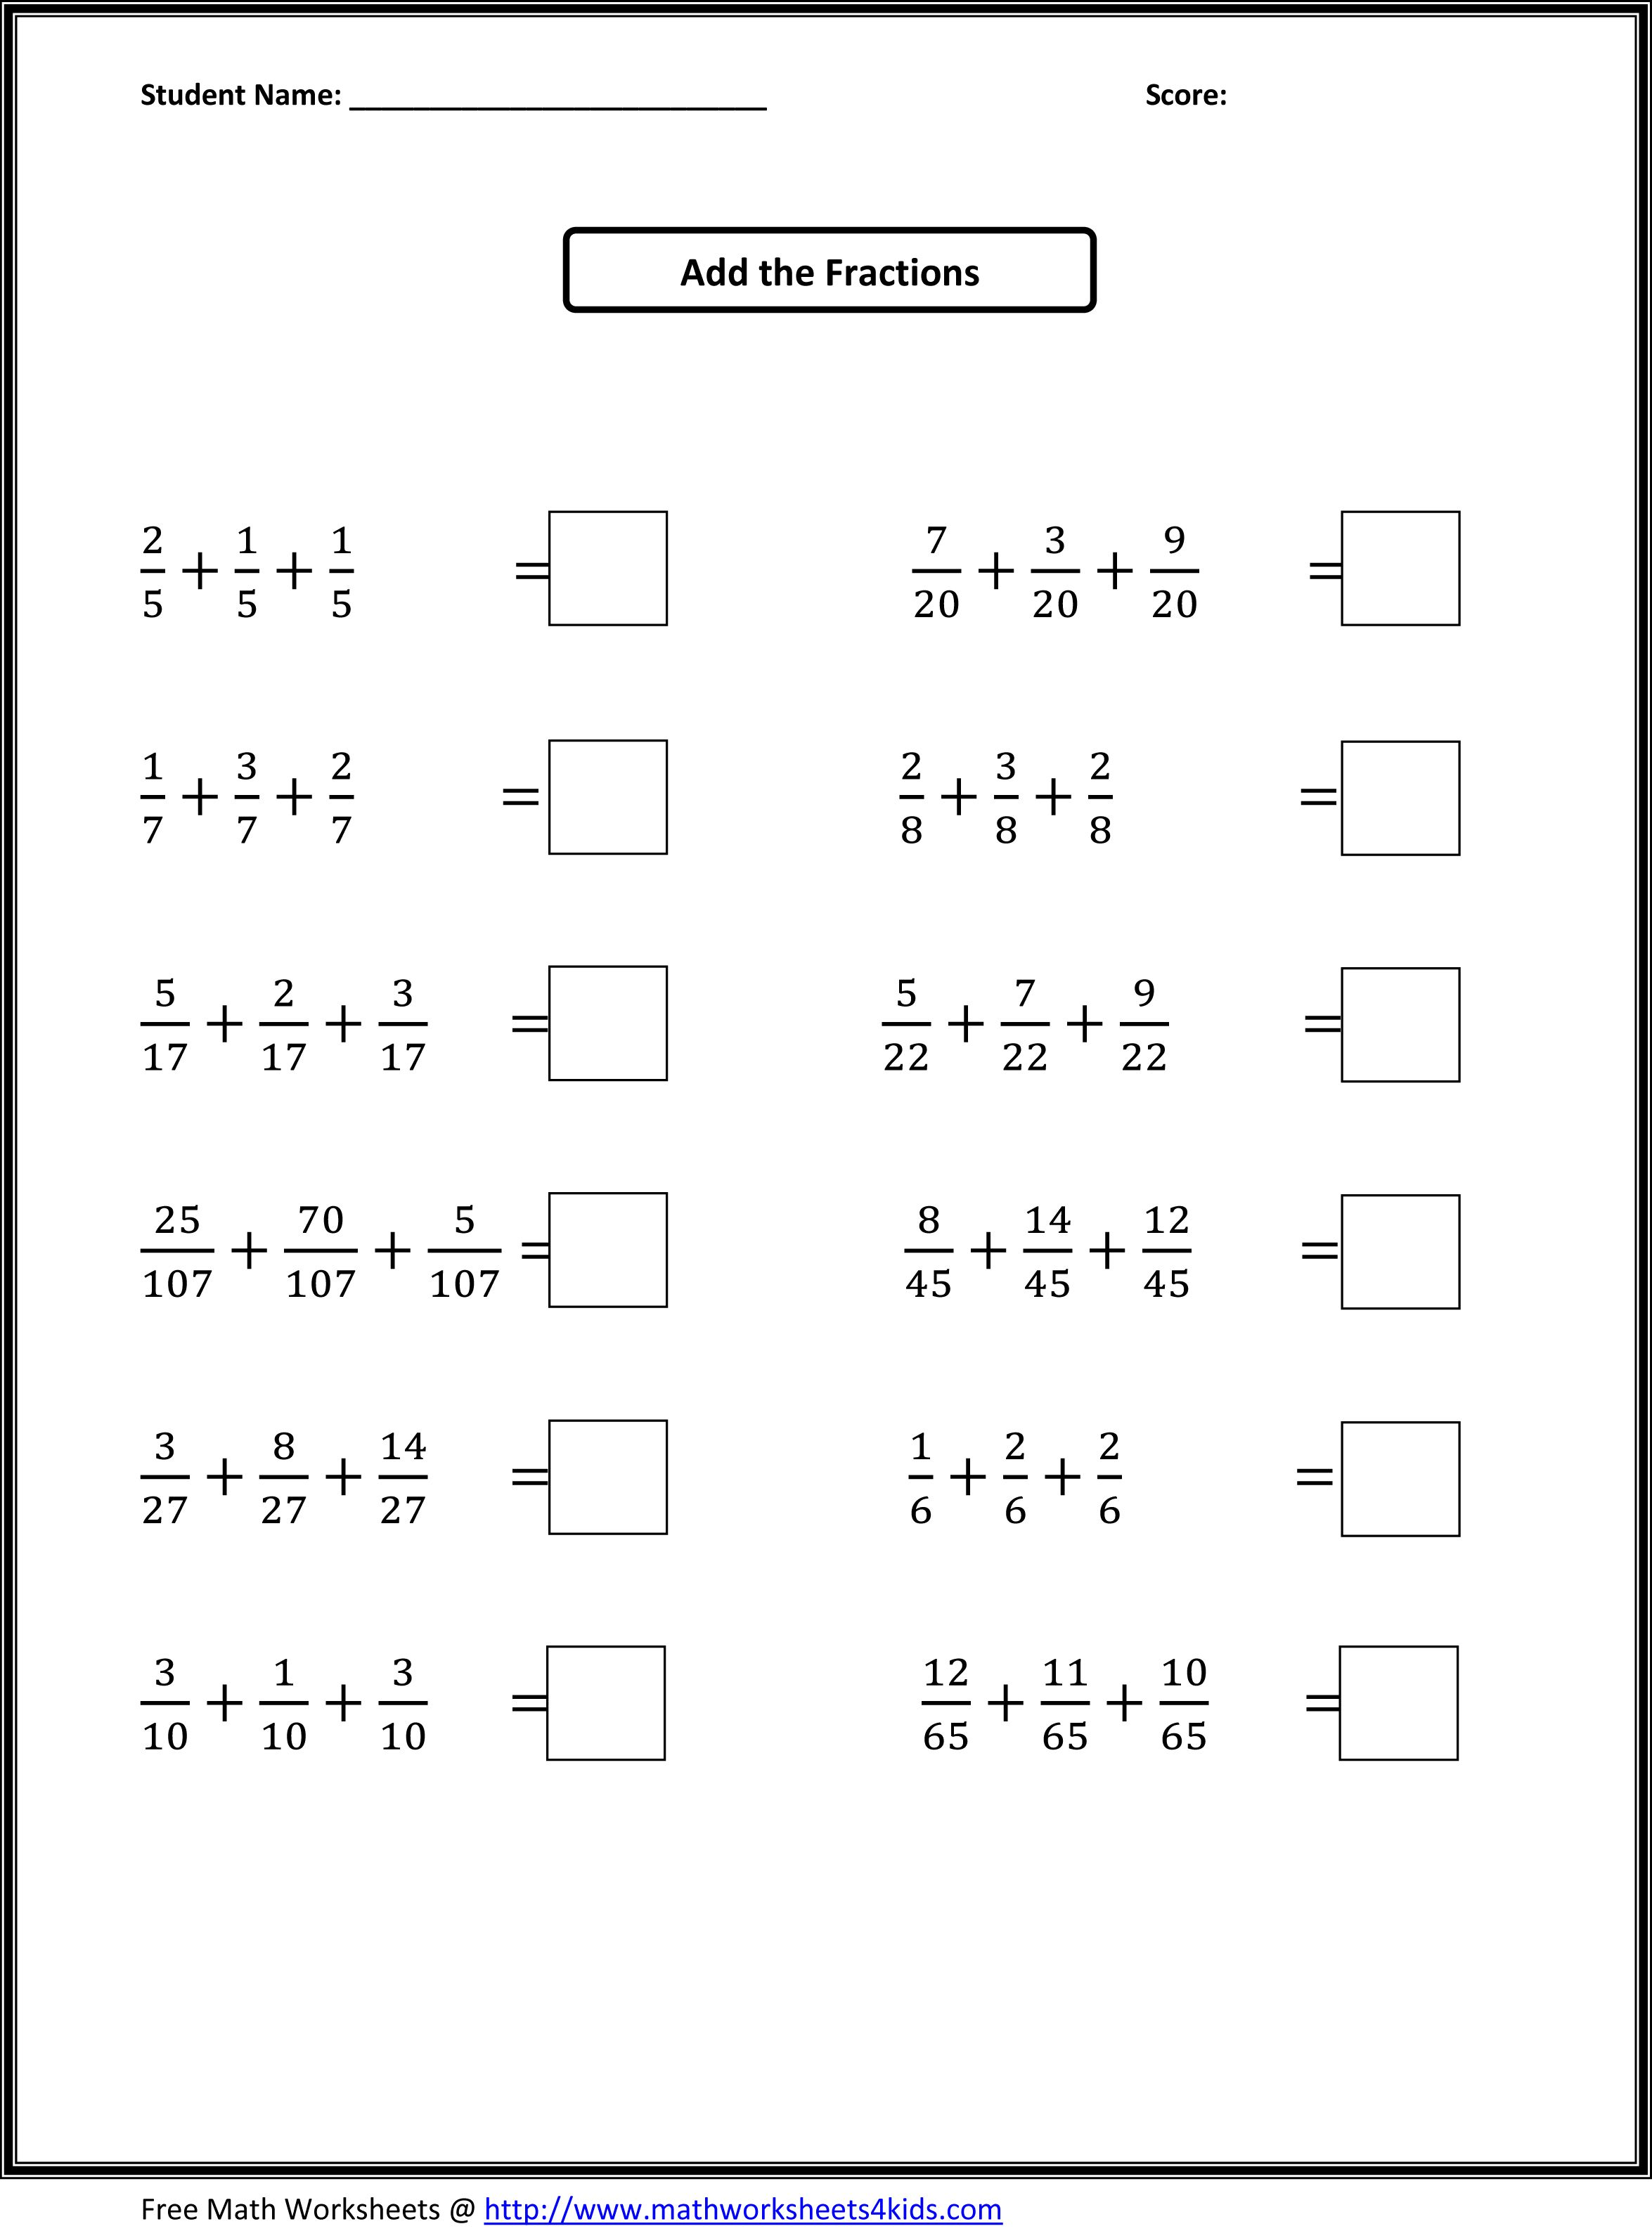 Worksheets 4th Grade Math Printable Worksheets printable worksheets by grade level and skill teaching ideas fourth math worksheets